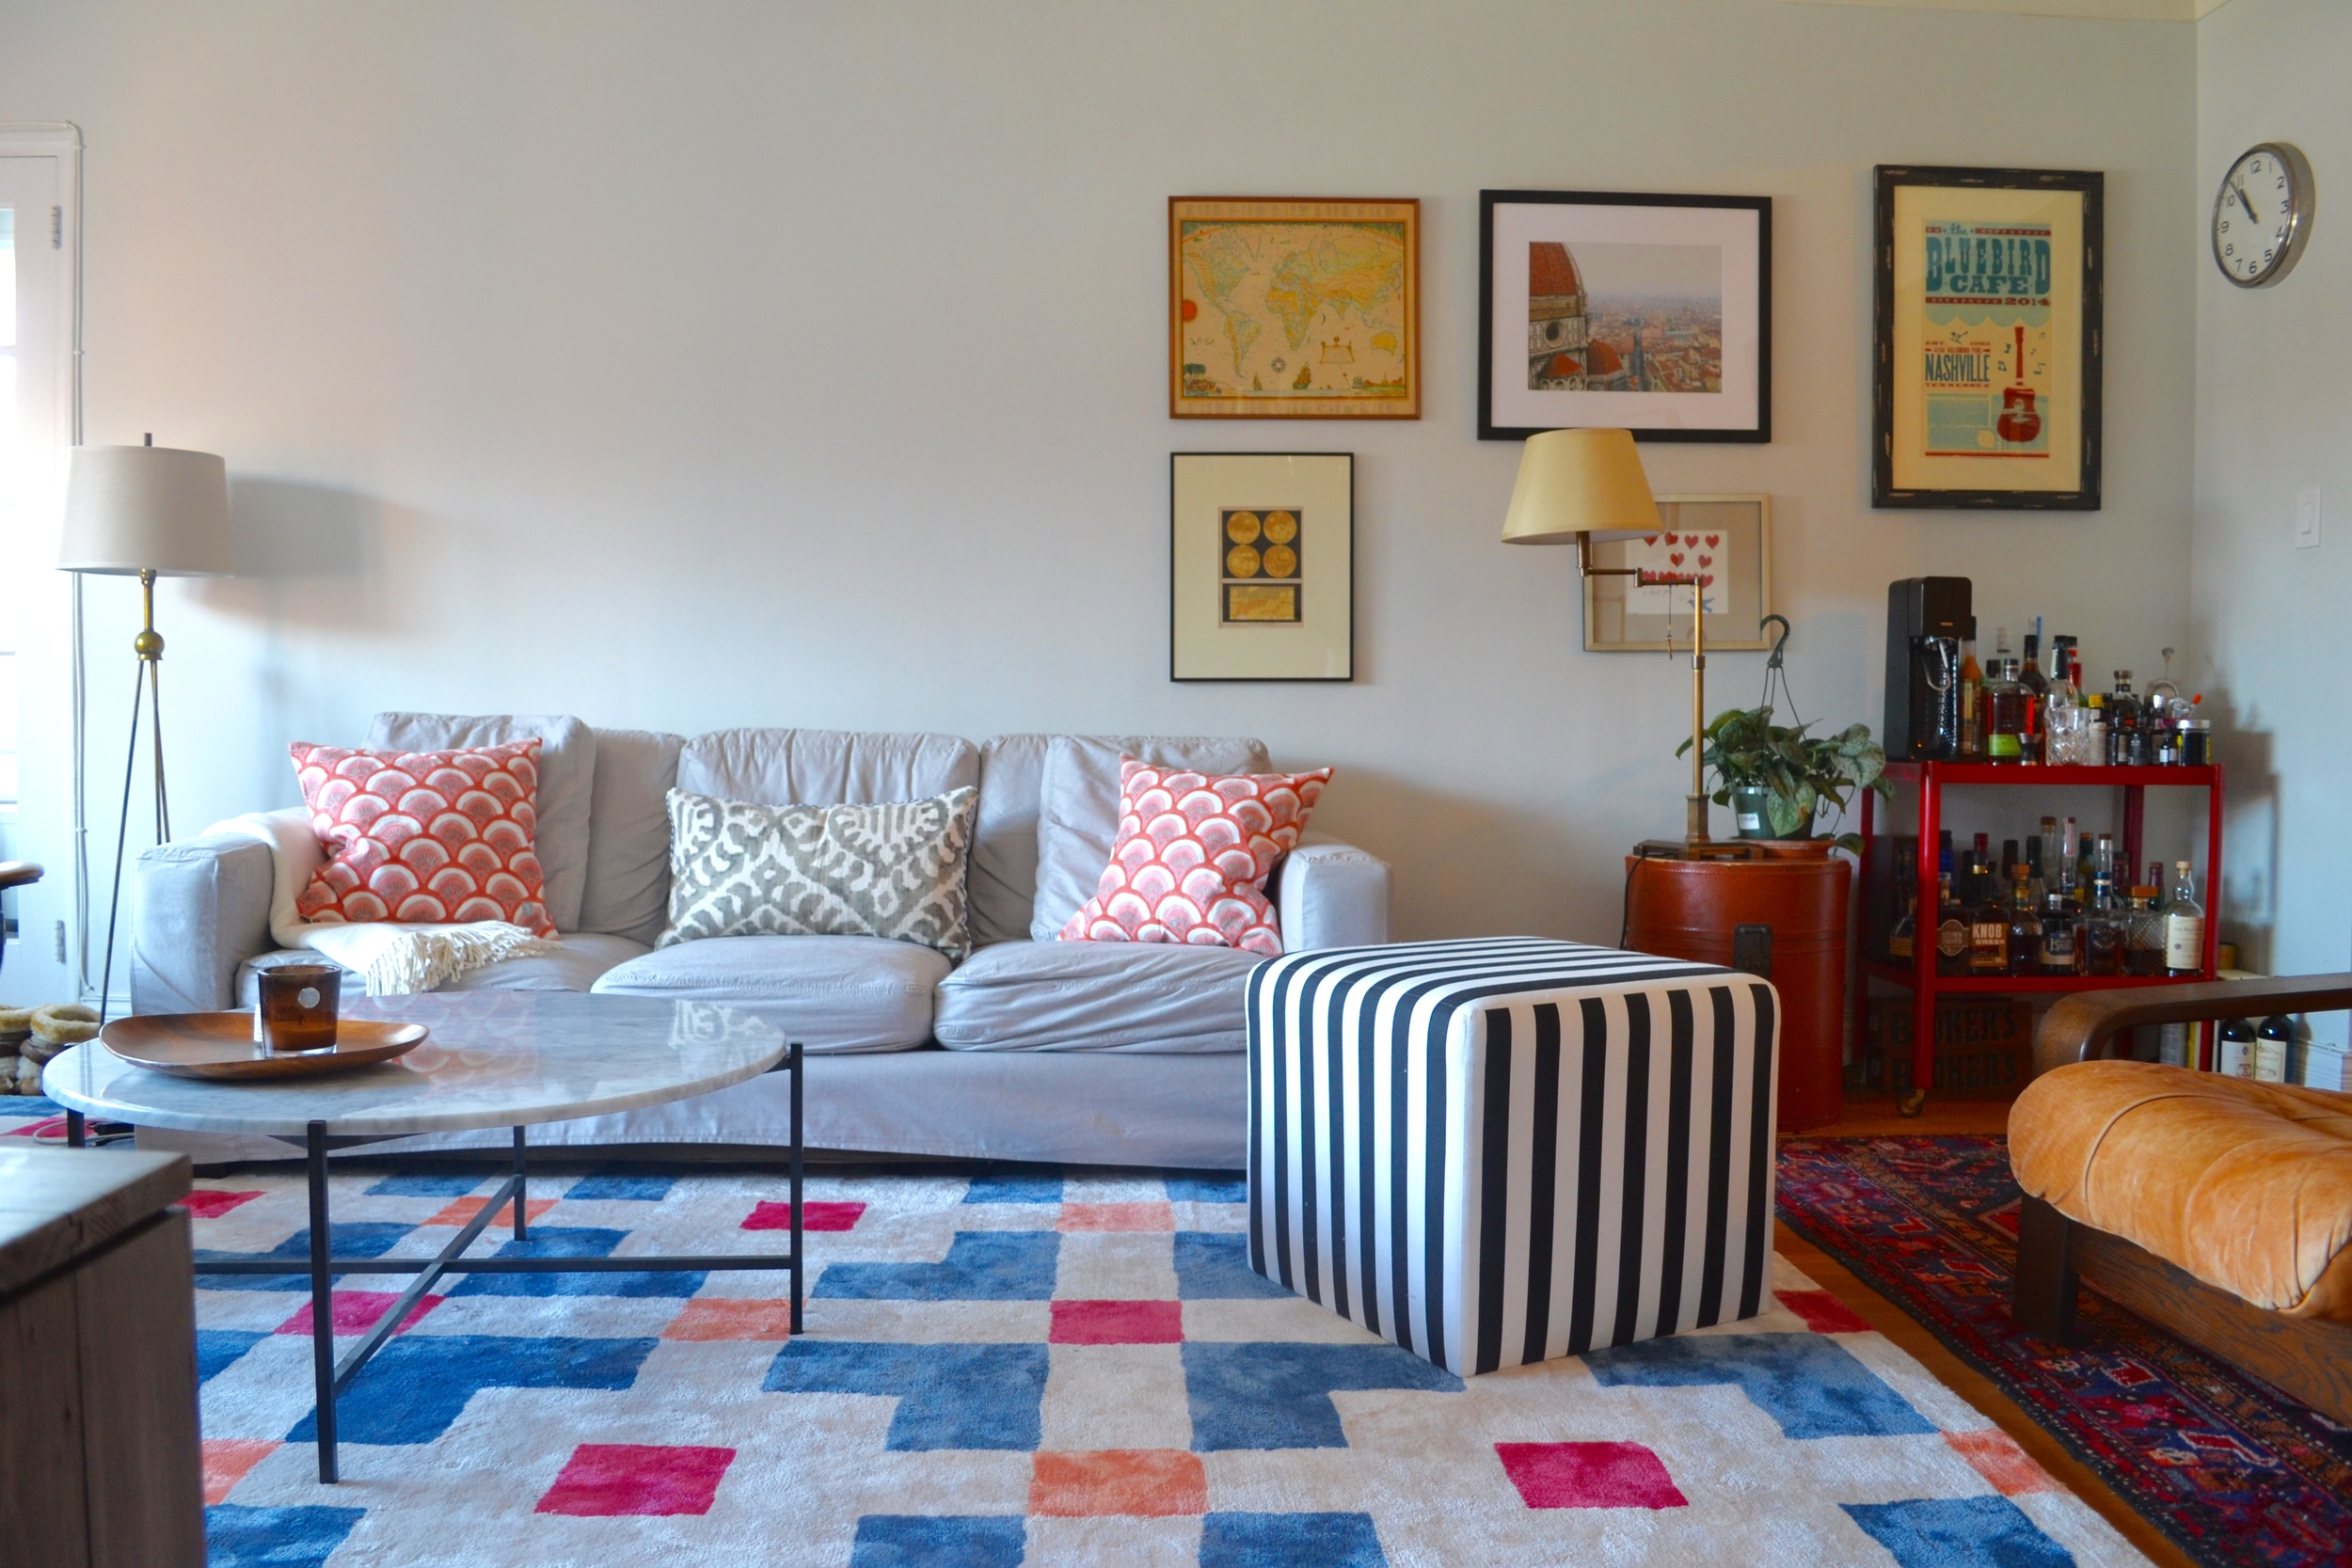 The slipcovered sofa is from Room and Board, the black and white cube is One Kings Lane. The area rug is from Anthropologie. The throw pillows were from fabrics Client Crafty and I picked out at Mood, and she sewed herself! The coffee table is a second hand find from AptDeco. The table lamp was a steal from Restoration Hardware Outlet.